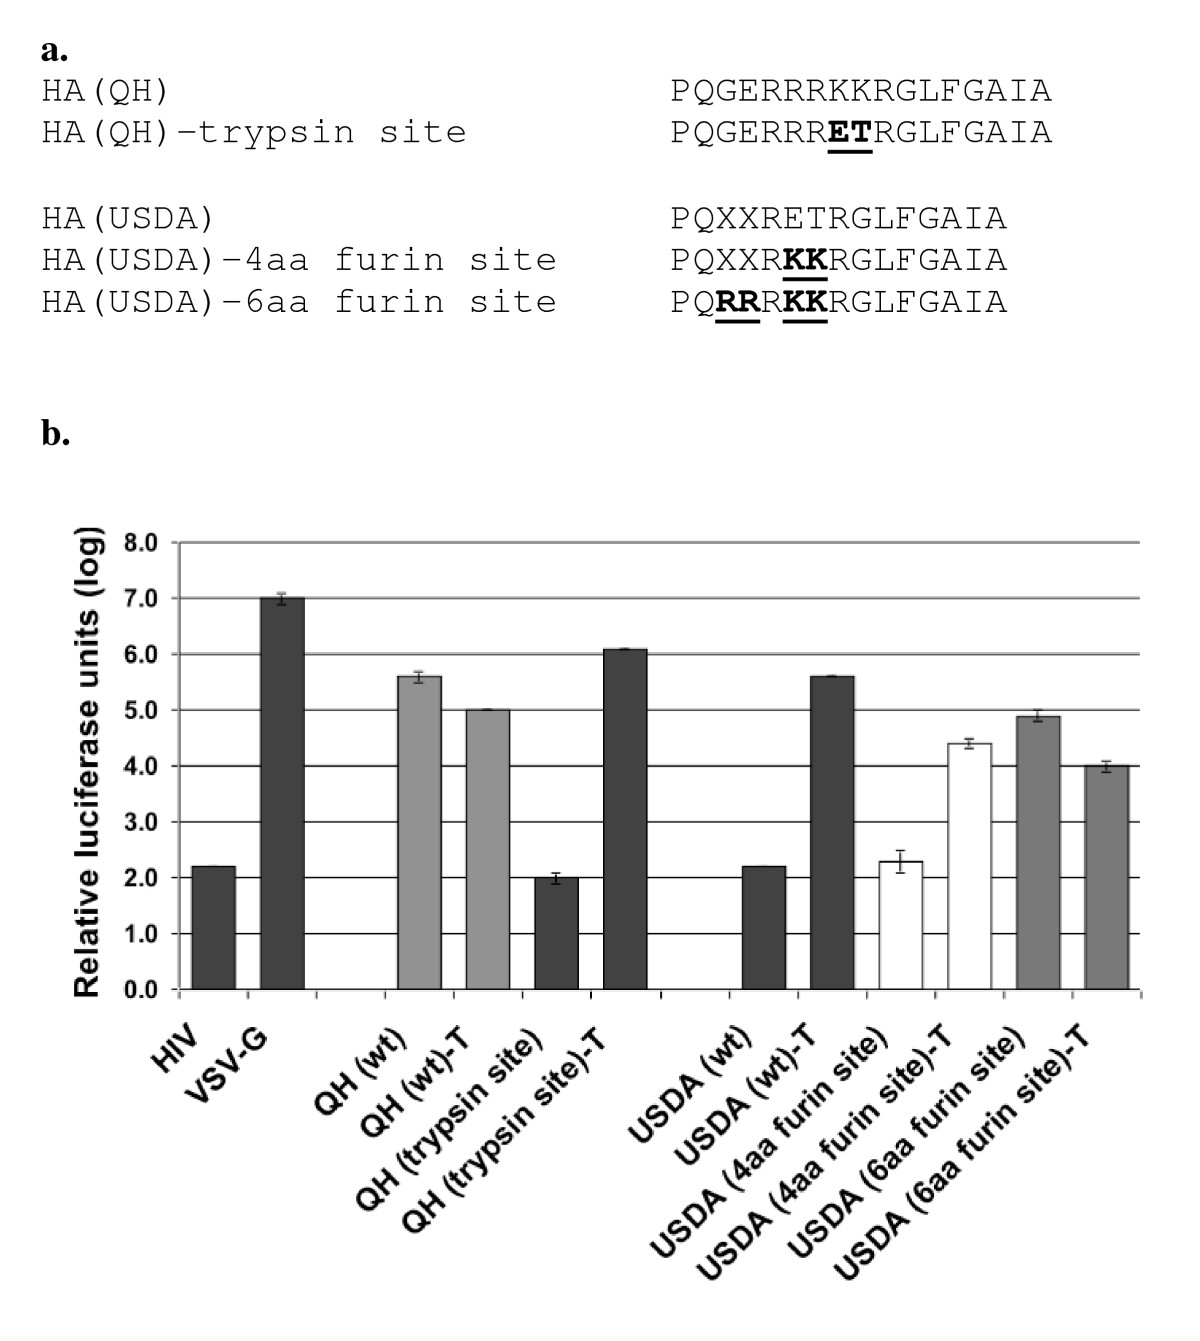 http://static-content.springer.com/image/art%3A10.1186%2F1743-422X-6-76/MediaObjects/12985_2009_Article_590_Fig2_HTML.jpg